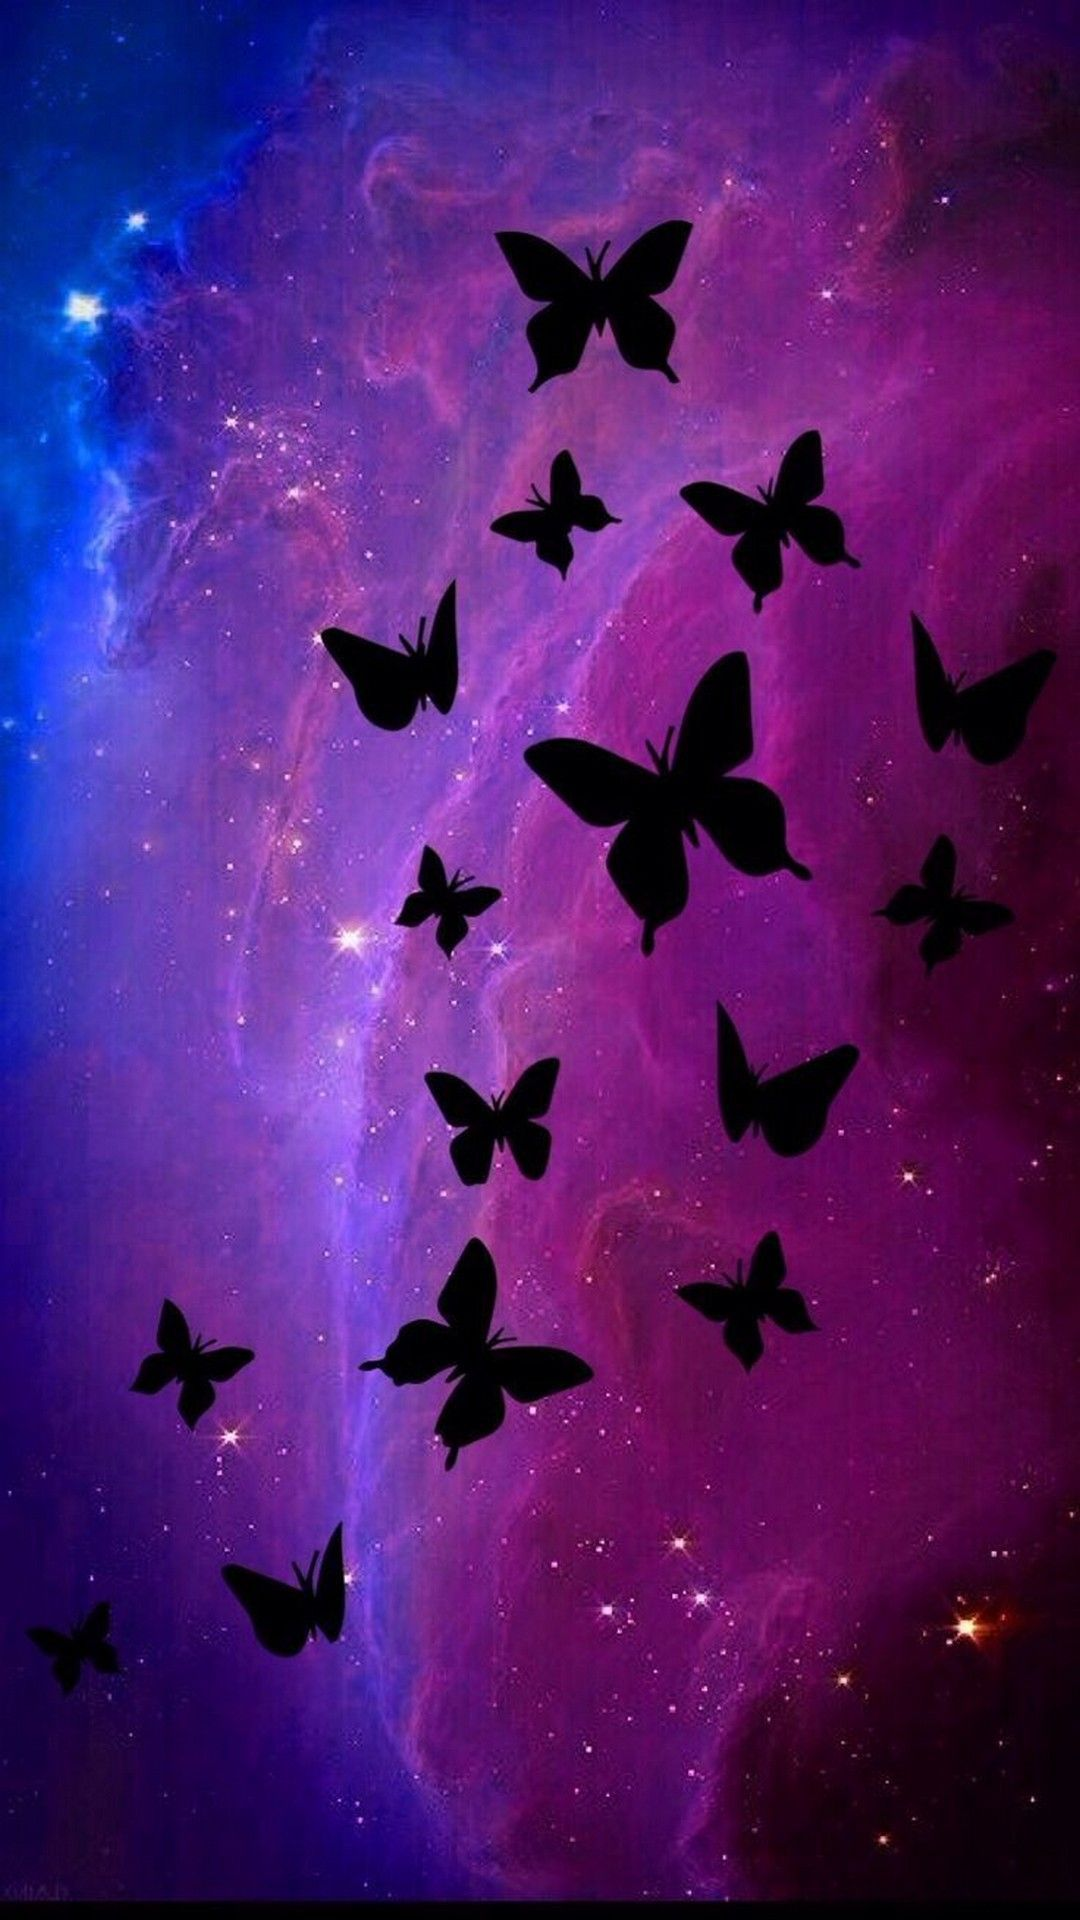 اجمل خلفيات ايفون 7 عالية الدقة 2018 Iphone 7 Hd Wallpapers Tecnologis Purple Butterfly Wallpaper Butterfly Wallpaper Butterfly Wallpaper Iphone